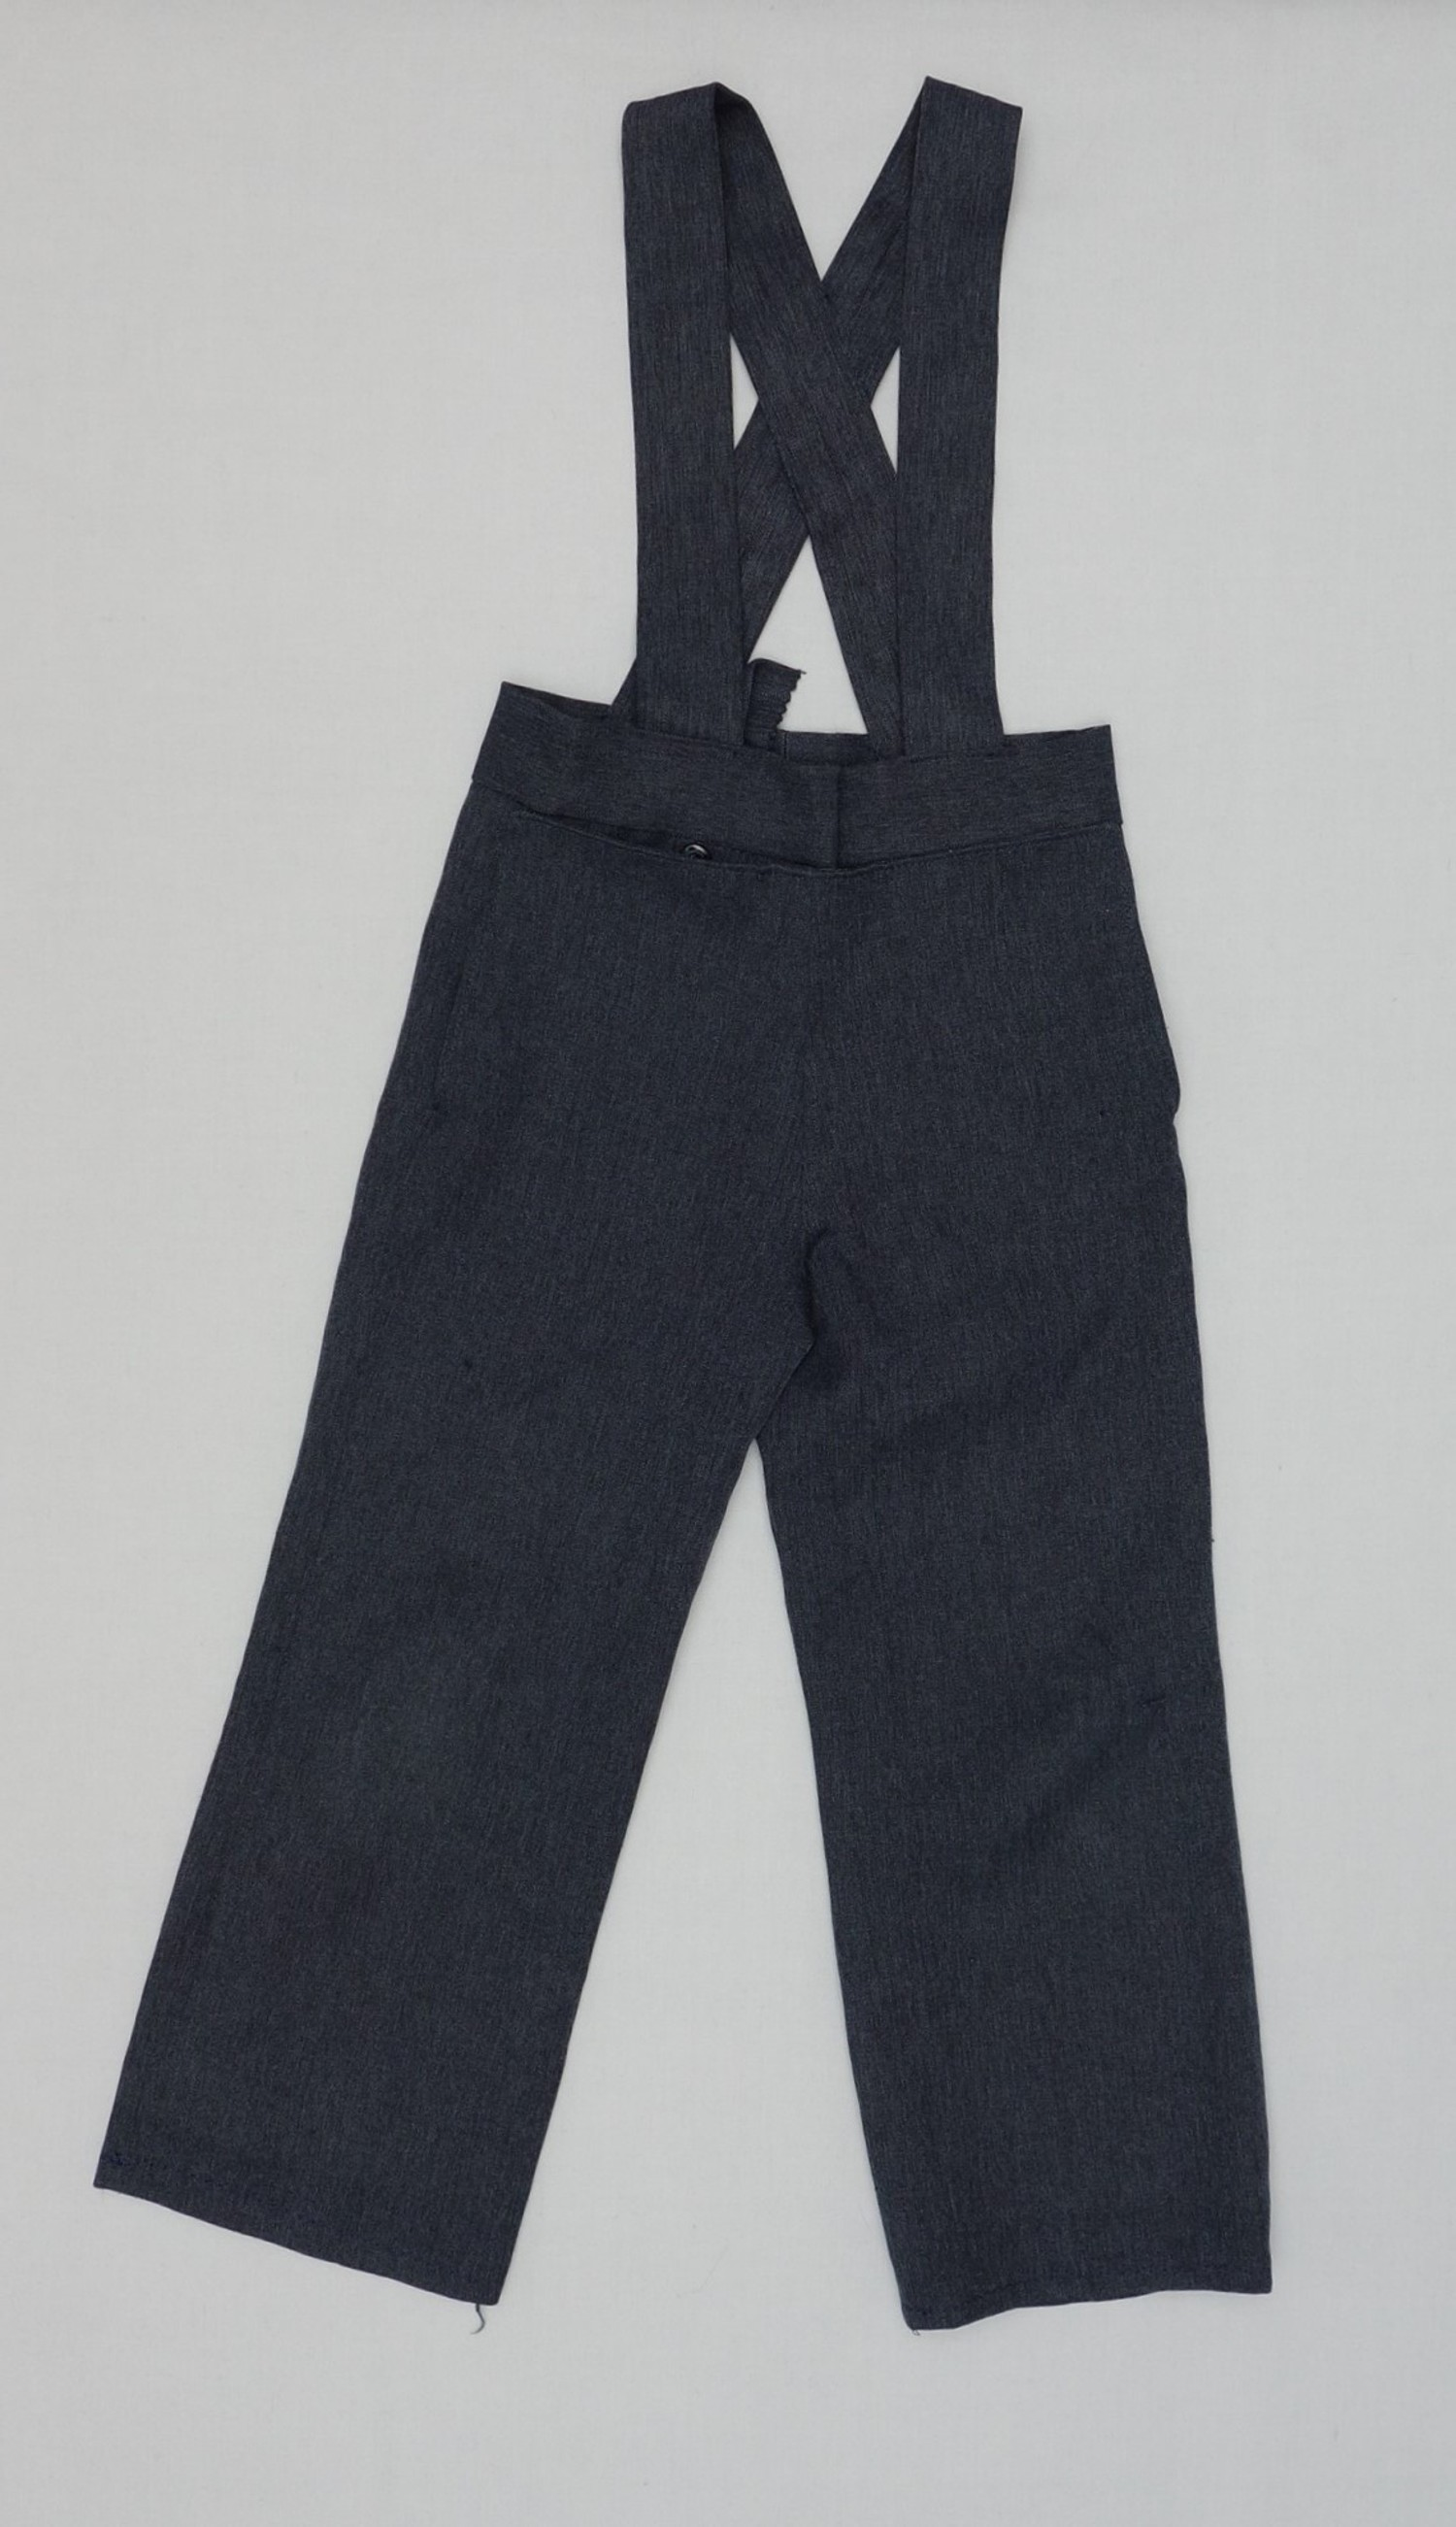 Pair of trousers for an Amish man, from Jamesport, Missouri, USA, 2017 (TRC 2017.2986).